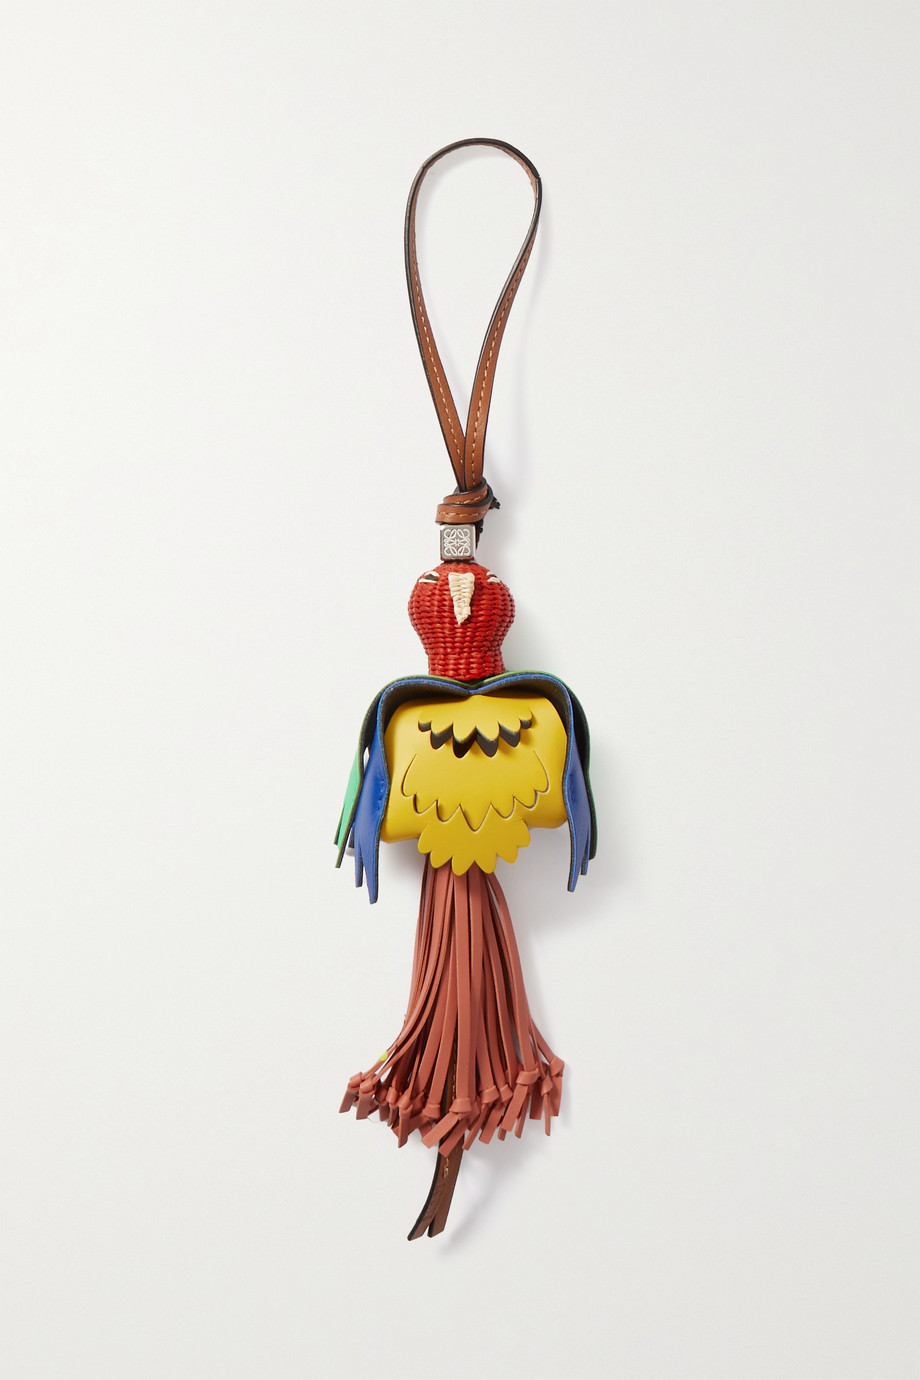 LOEWE + Paula's Ibiza raffia and leather bag charm